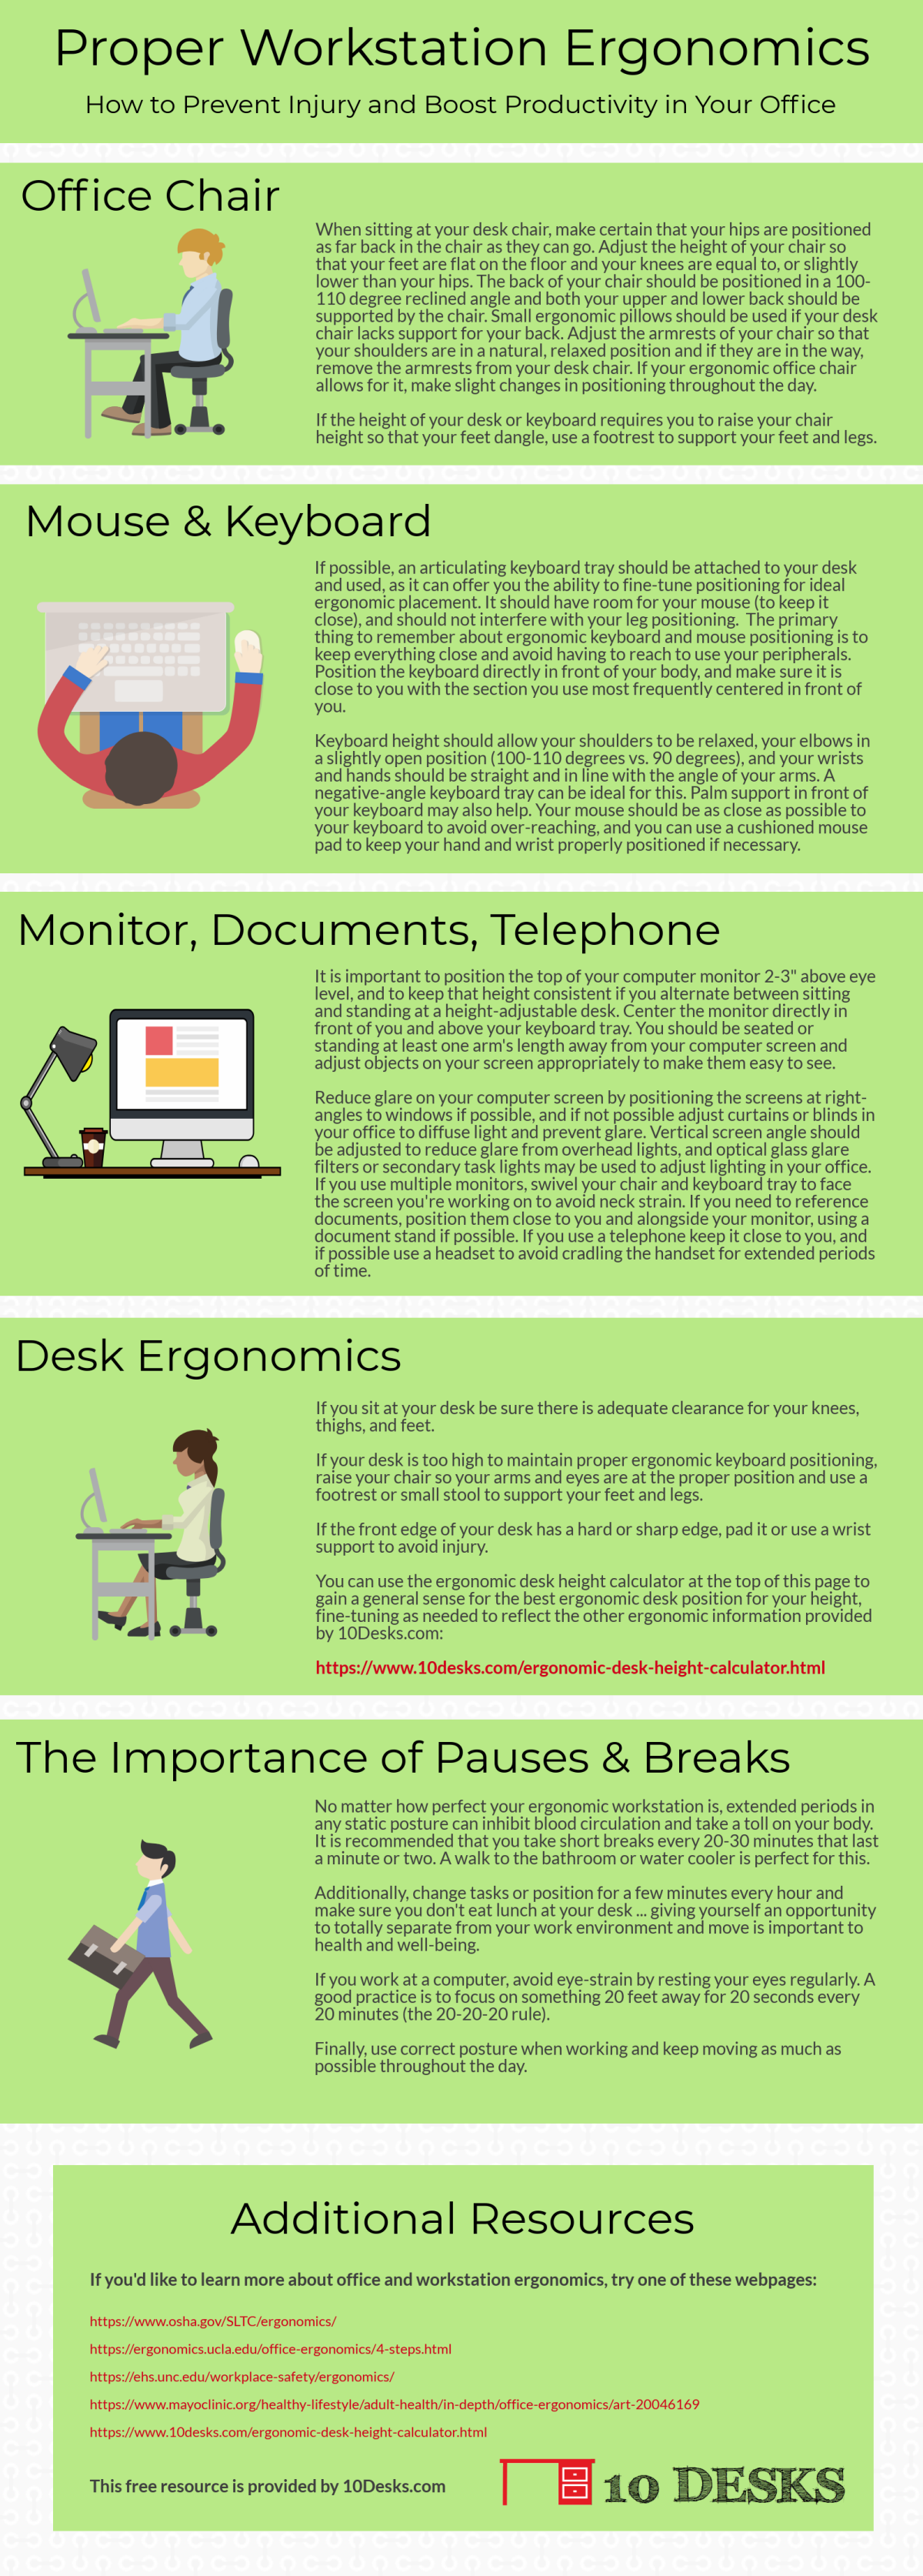 Ergonomics Infographic from 10Desks.com